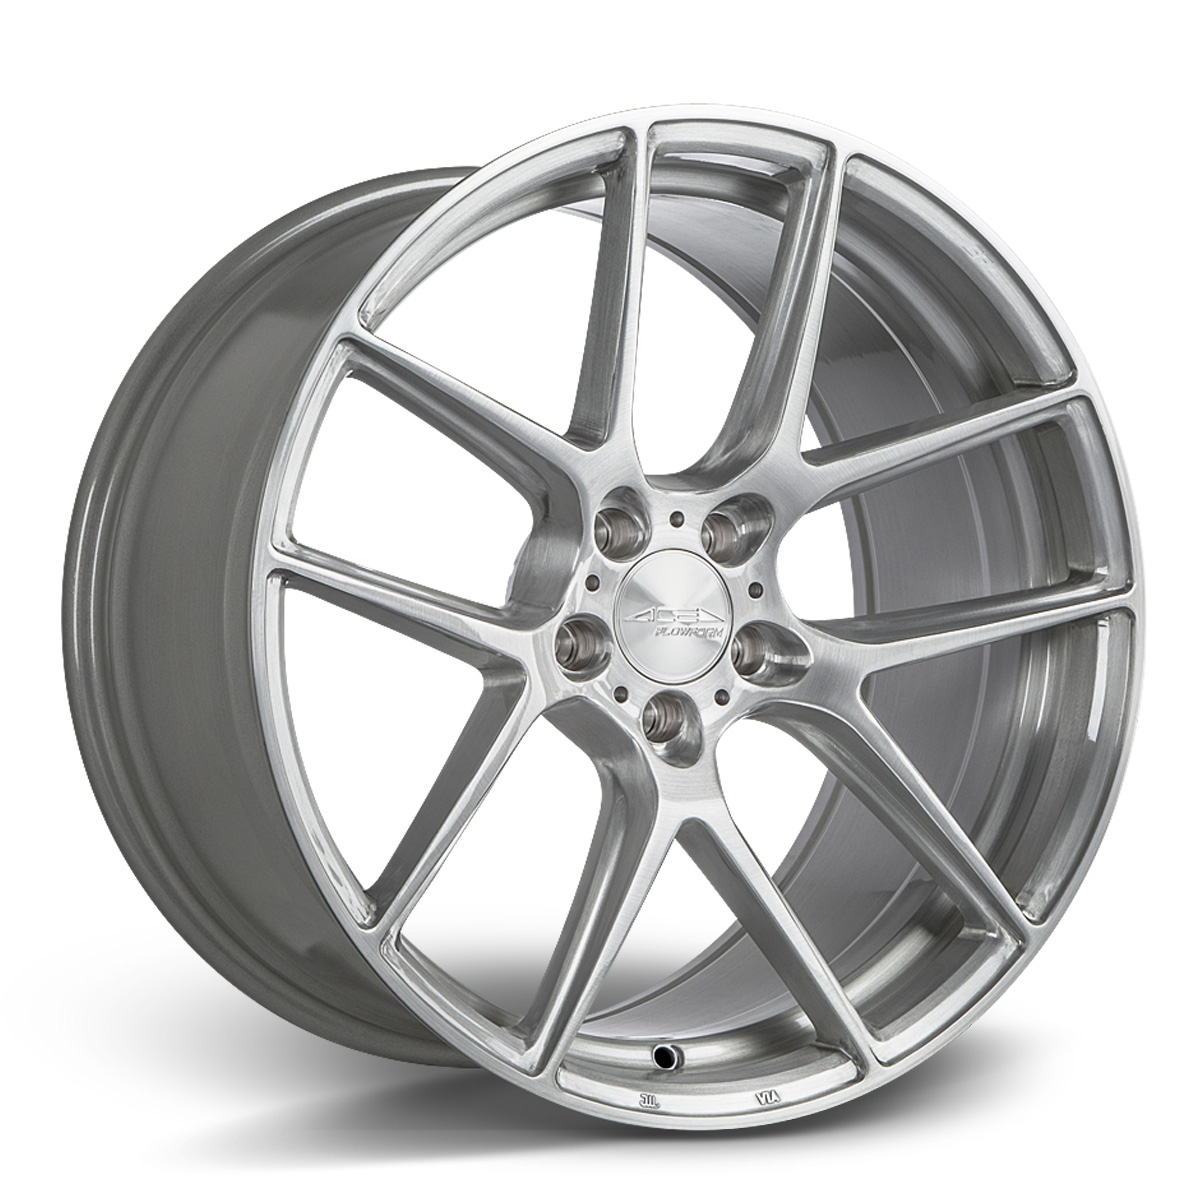 ACE-ALLOY-AFF02-BRUSHED-CLEAR-COAT.jpg